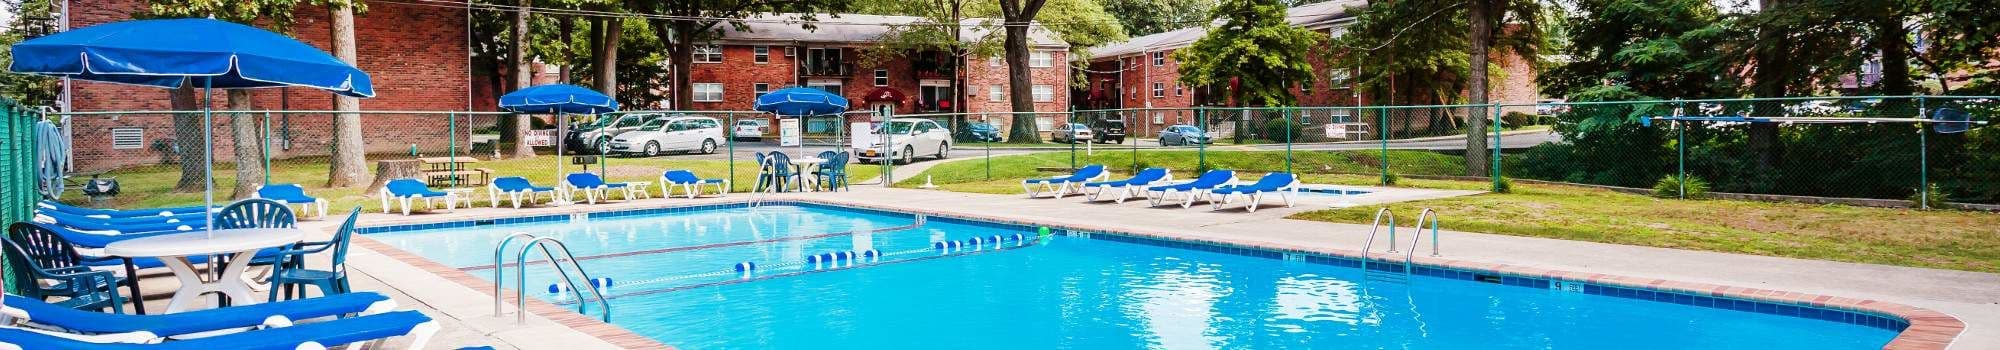 Sunset Garden Apartments offers a great neighborhood to its residents